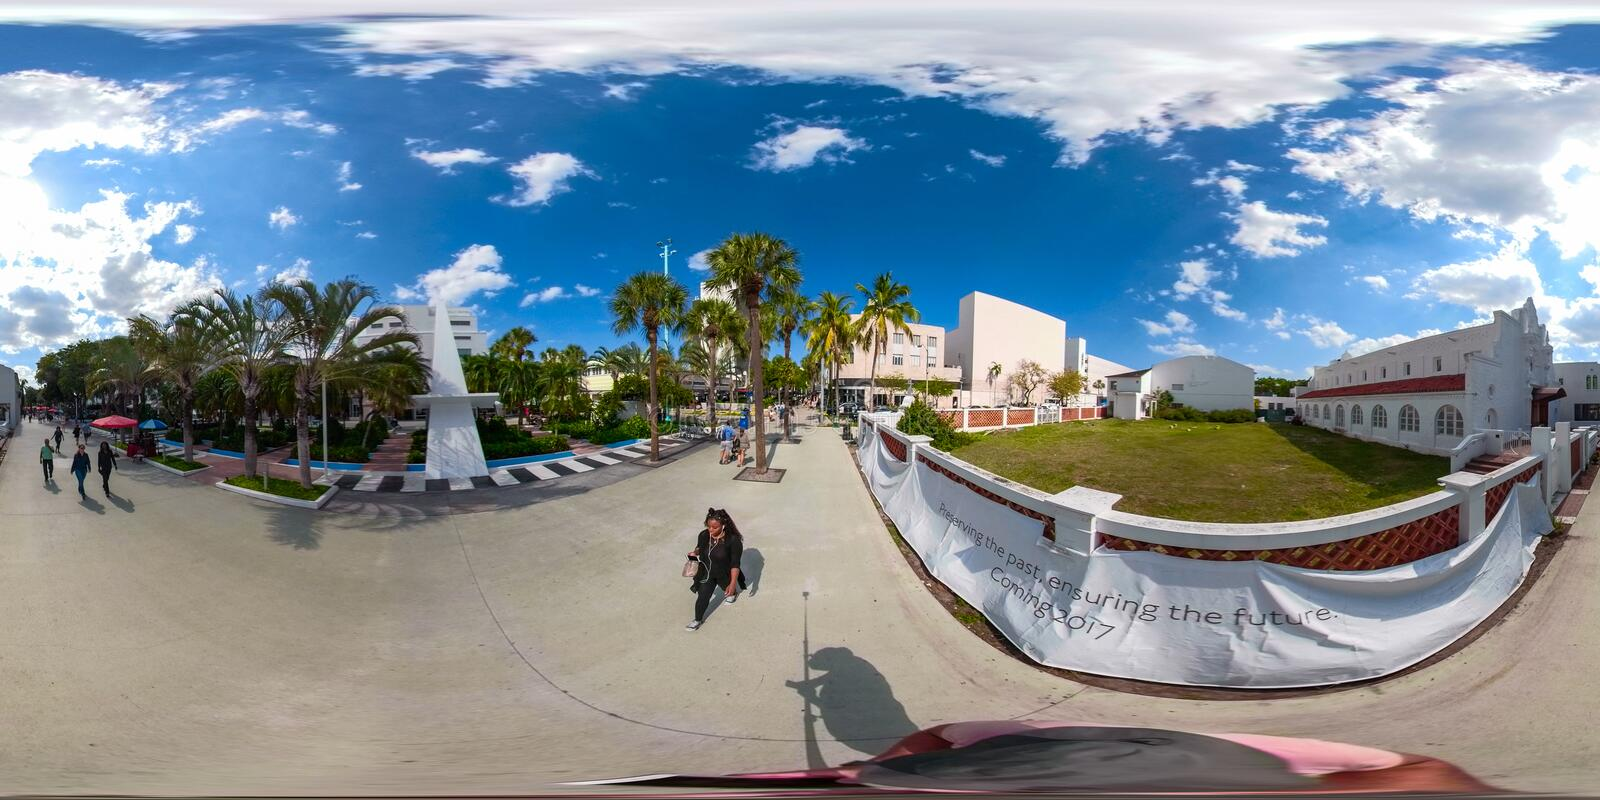 Vr Miami Beach-Lincoln Roads 360 Panorama lizenzfreie stockfotos